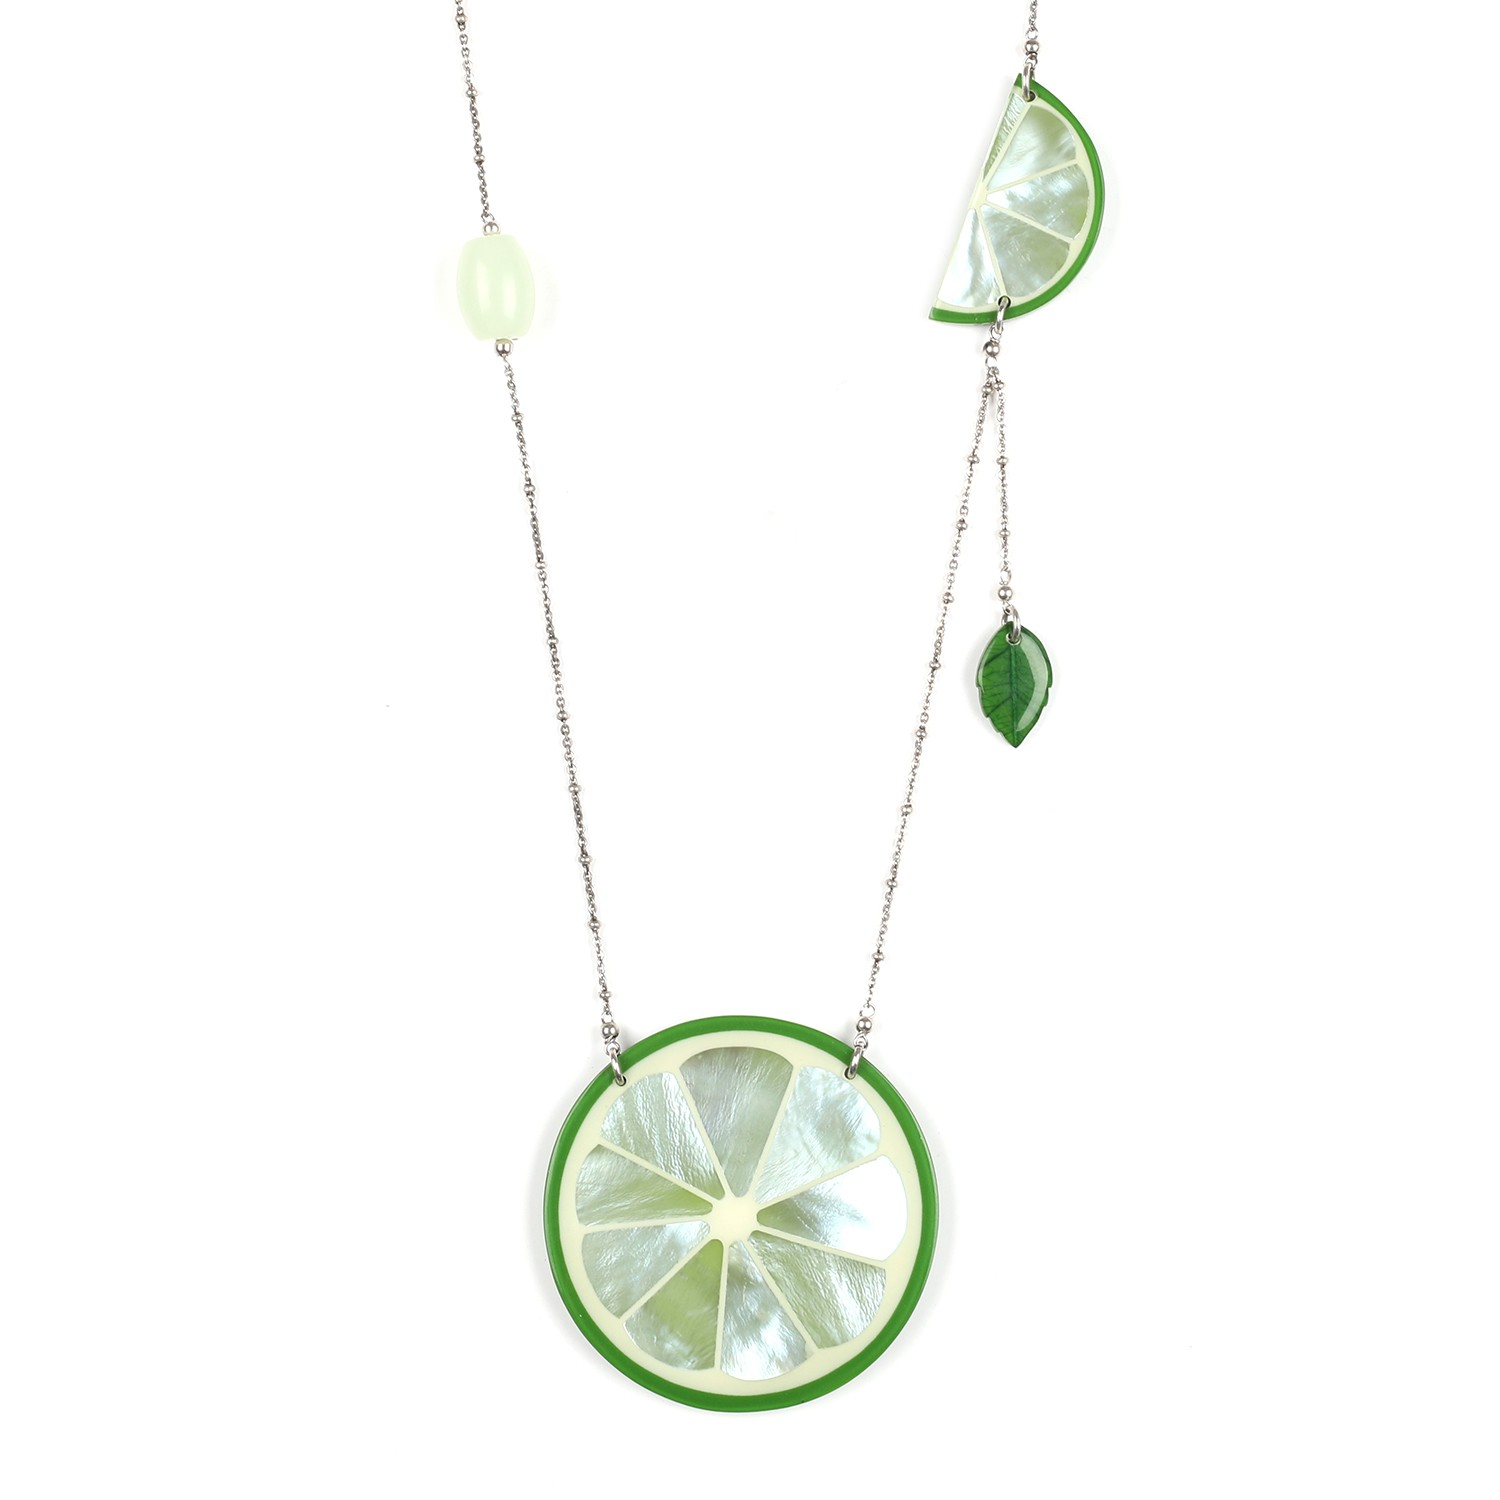 MOJITO collier long